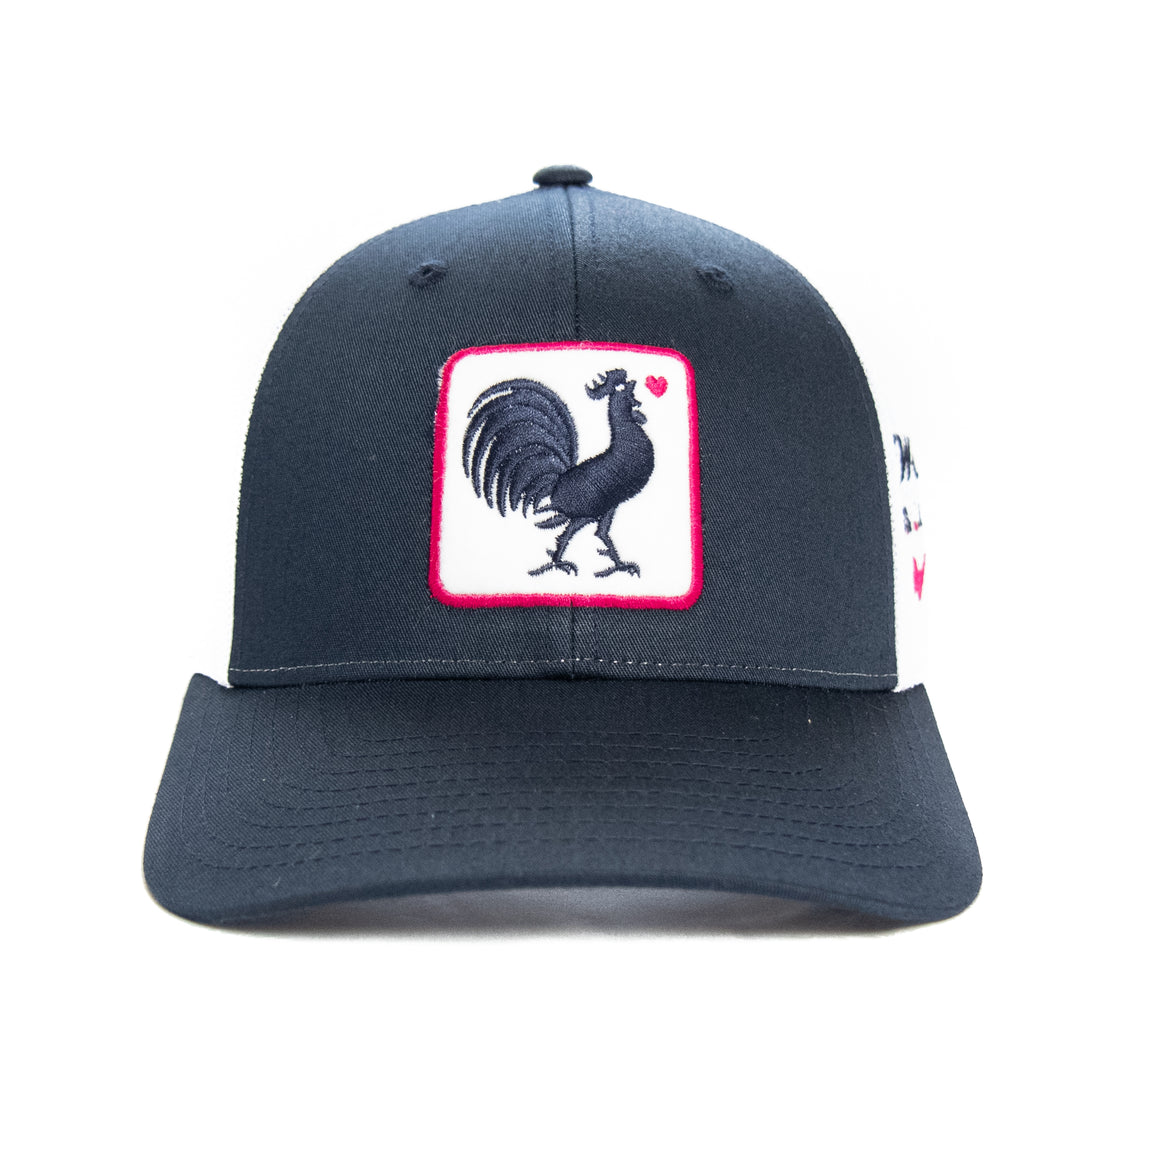 Original Rooster Trucker w/ Heart